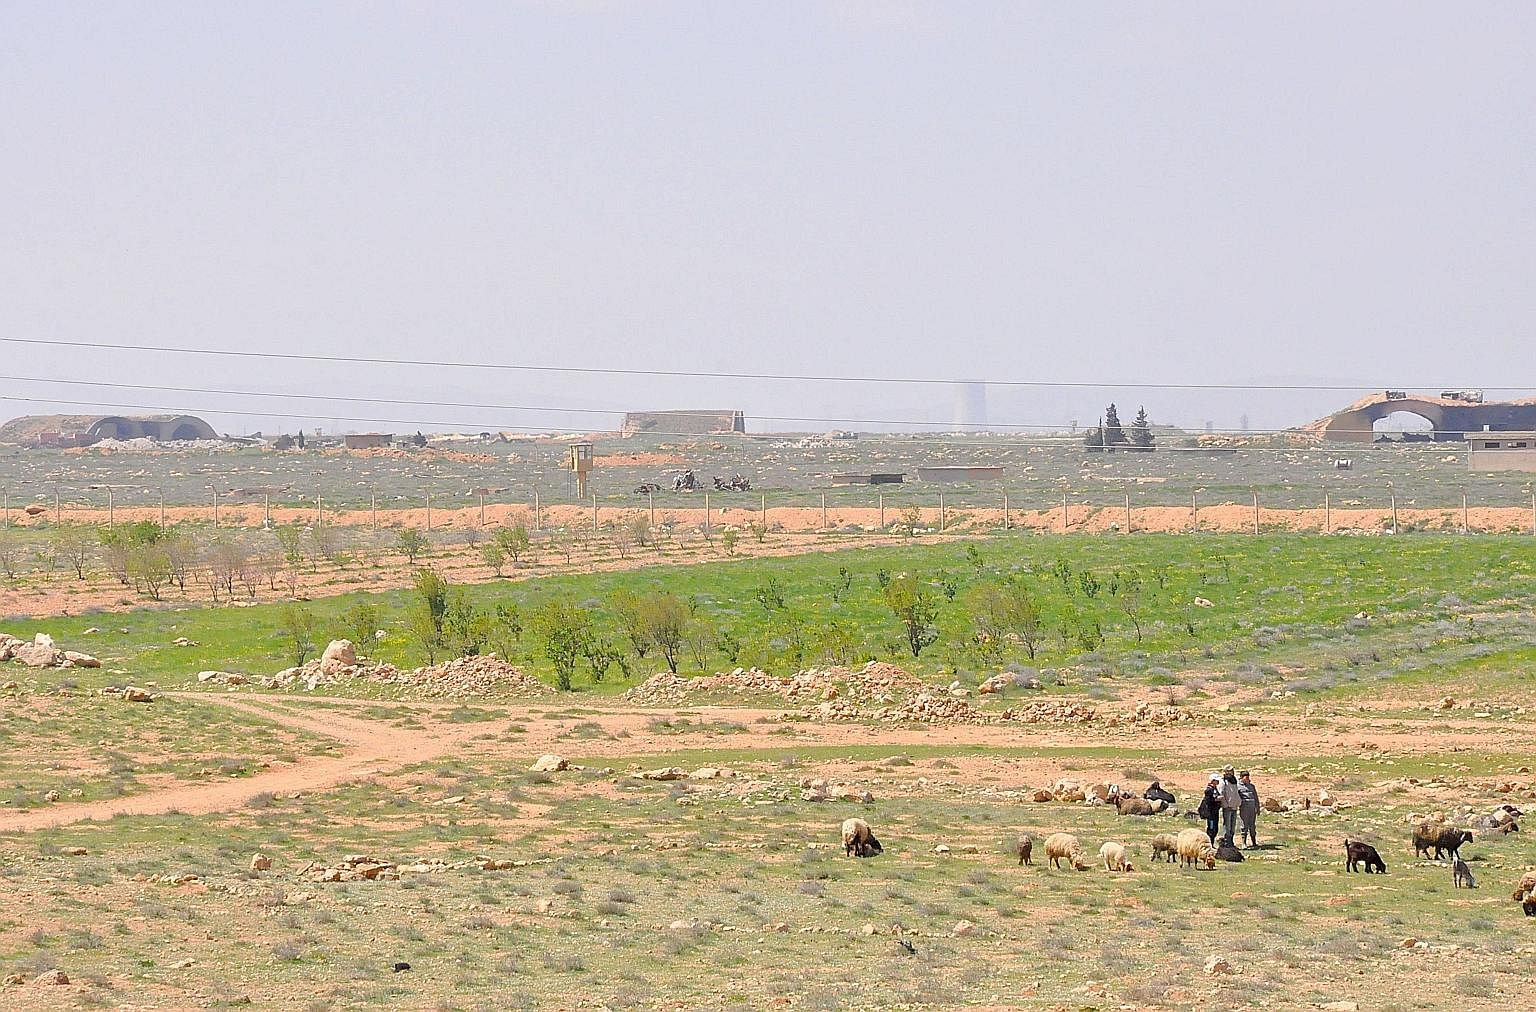 Syrian shepherds near the damaged Shayrat airfield, the Syrian government military base targeted last Thursday by US Tomahawk cruise missiles.